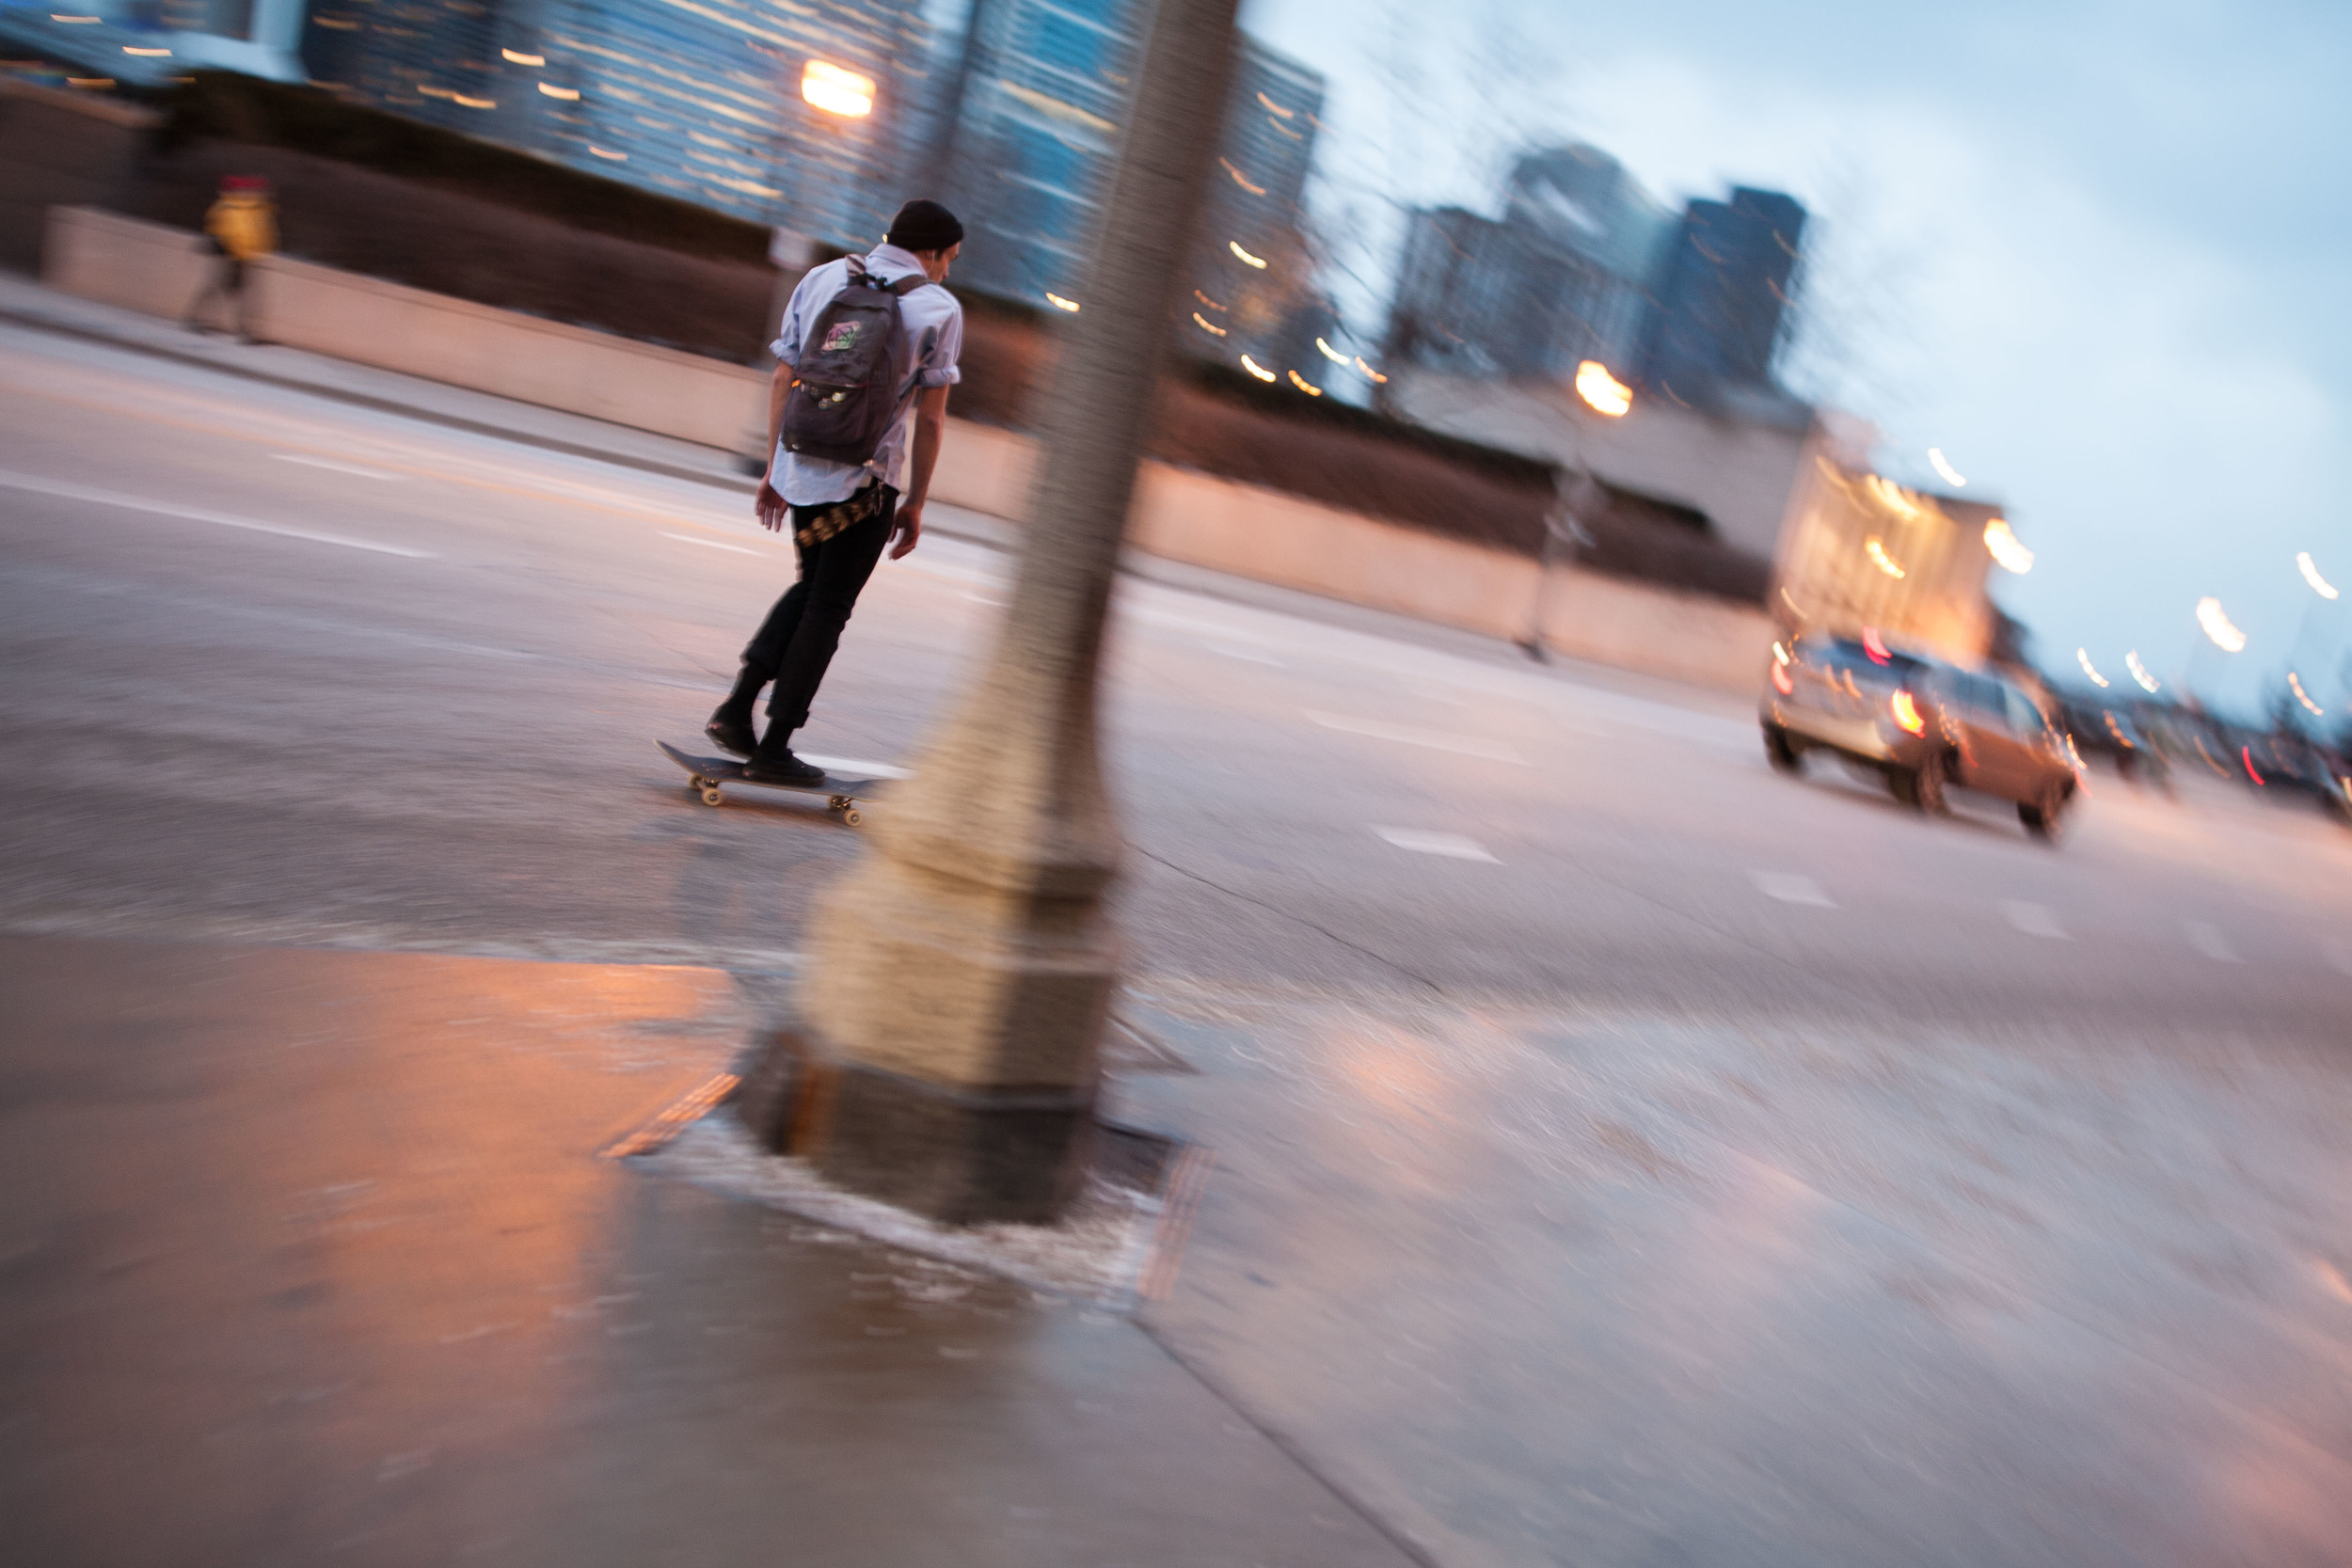 A skateboarder in Chicago cruises down East Monroe Street on a cold, damp January evening.